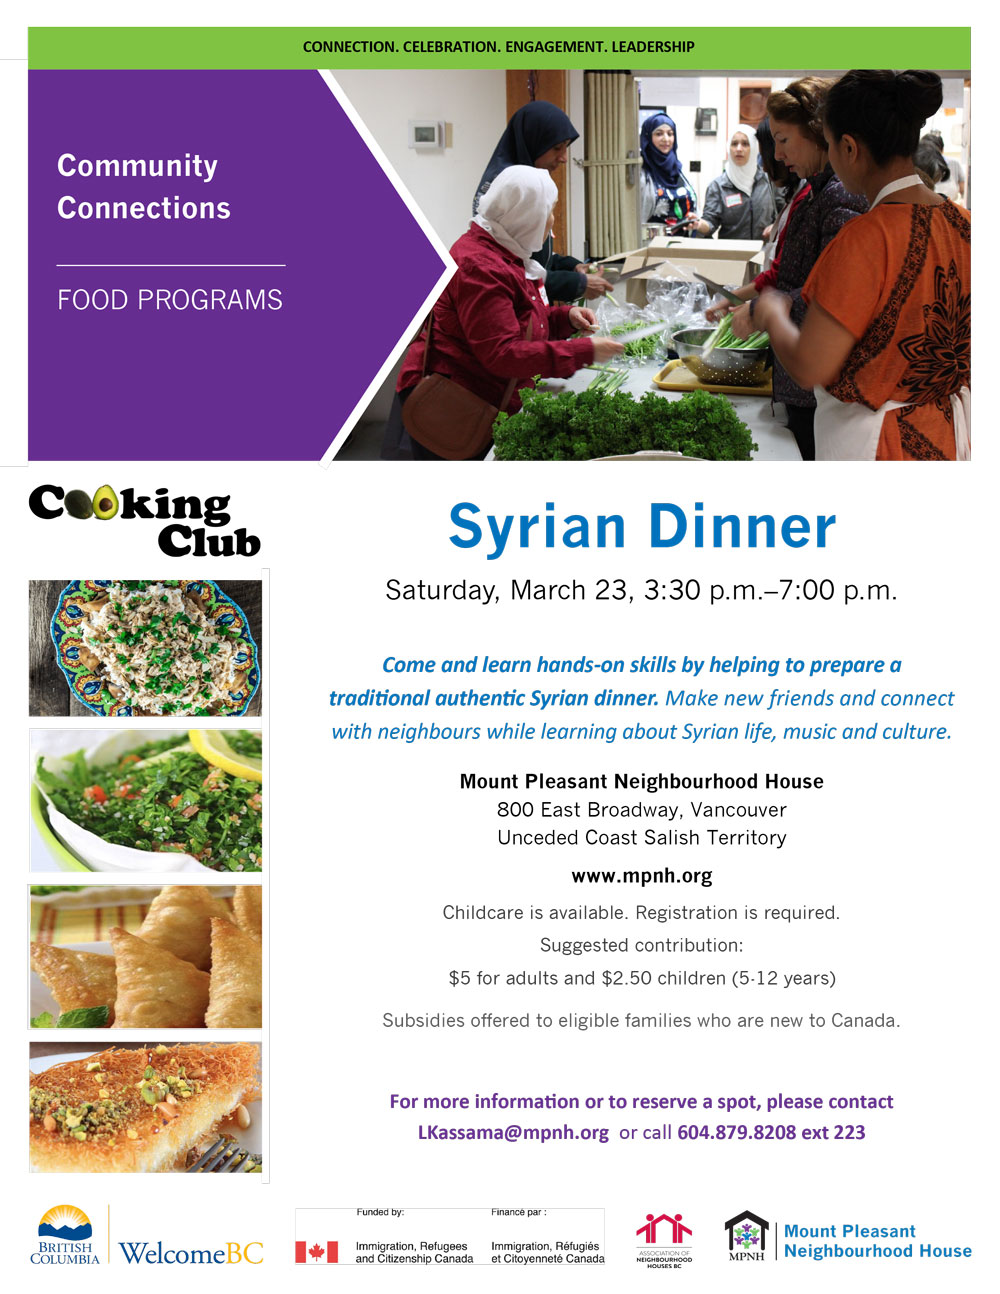 An image of the poster for this event, featuring a picture of people cooking together, and photos of Syrian food items on the menu